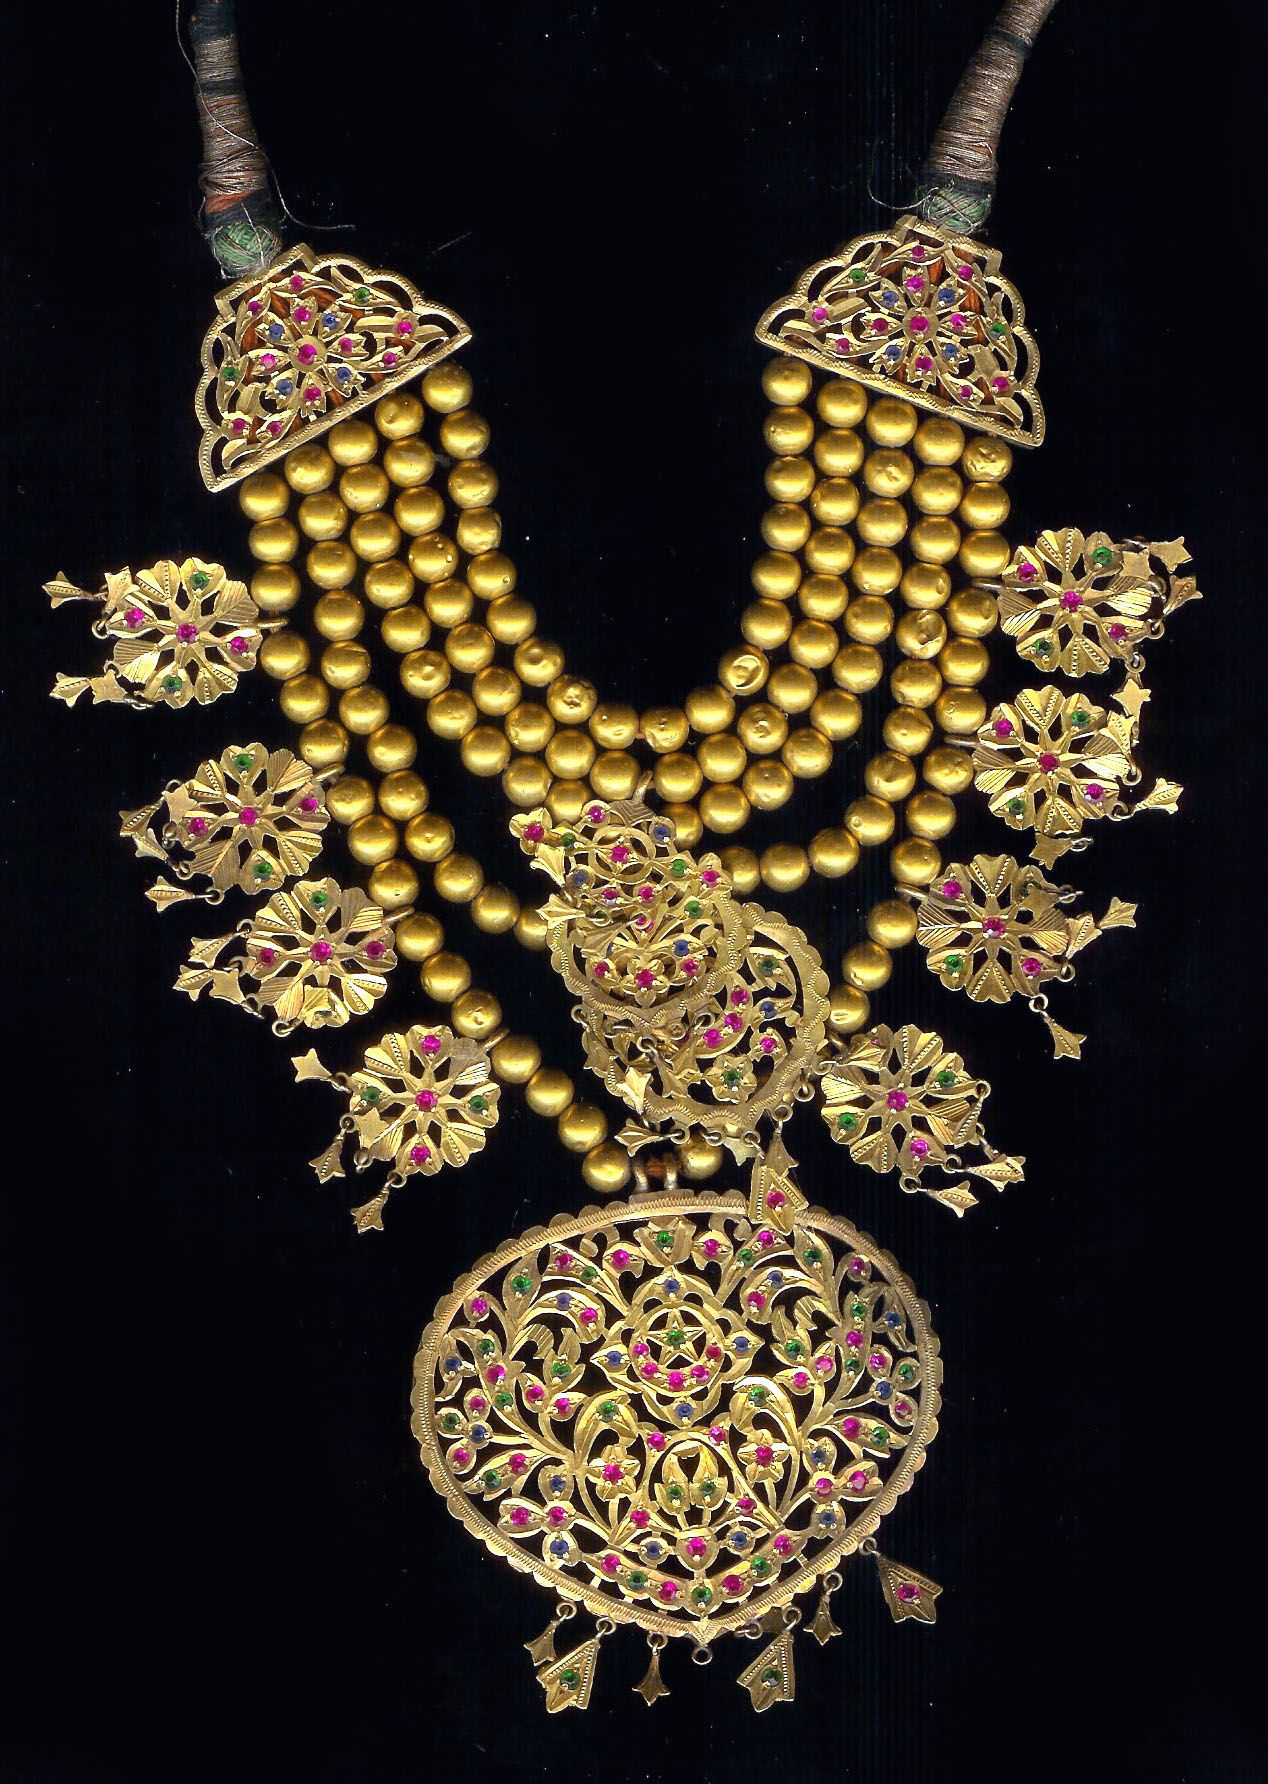 India 22k Gold Necklace With Inlaid Stones Late 19th